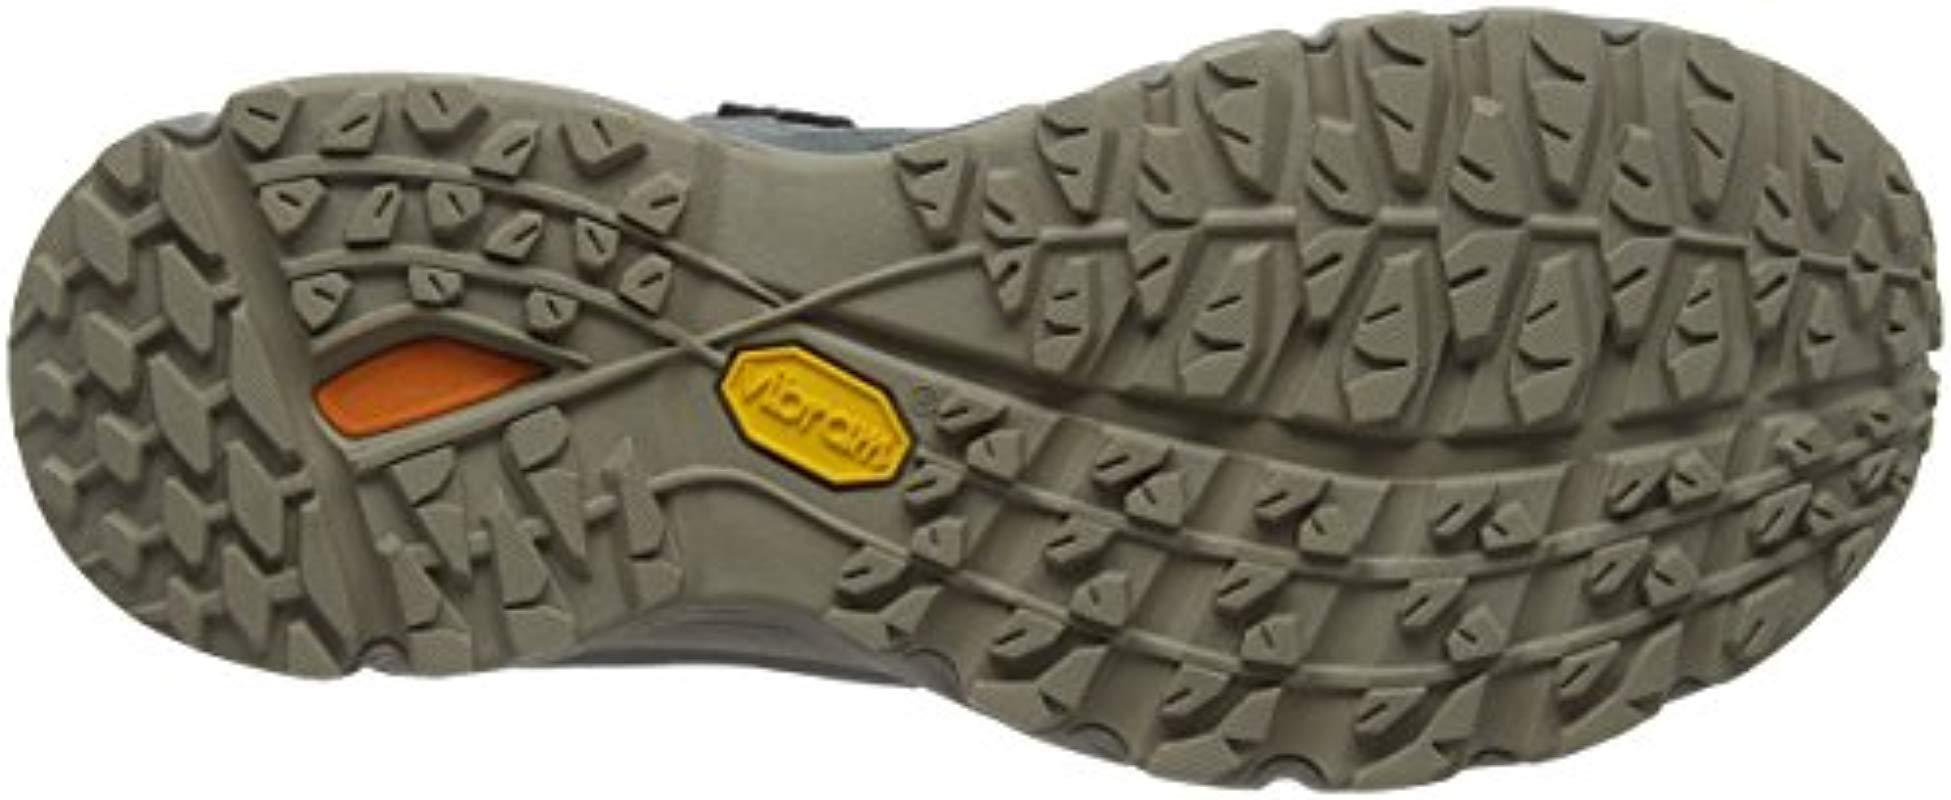 a1ed07ab1 The North Face Endurus Hike Mid Gore-tex High Rise Boots in Gray - Lyst